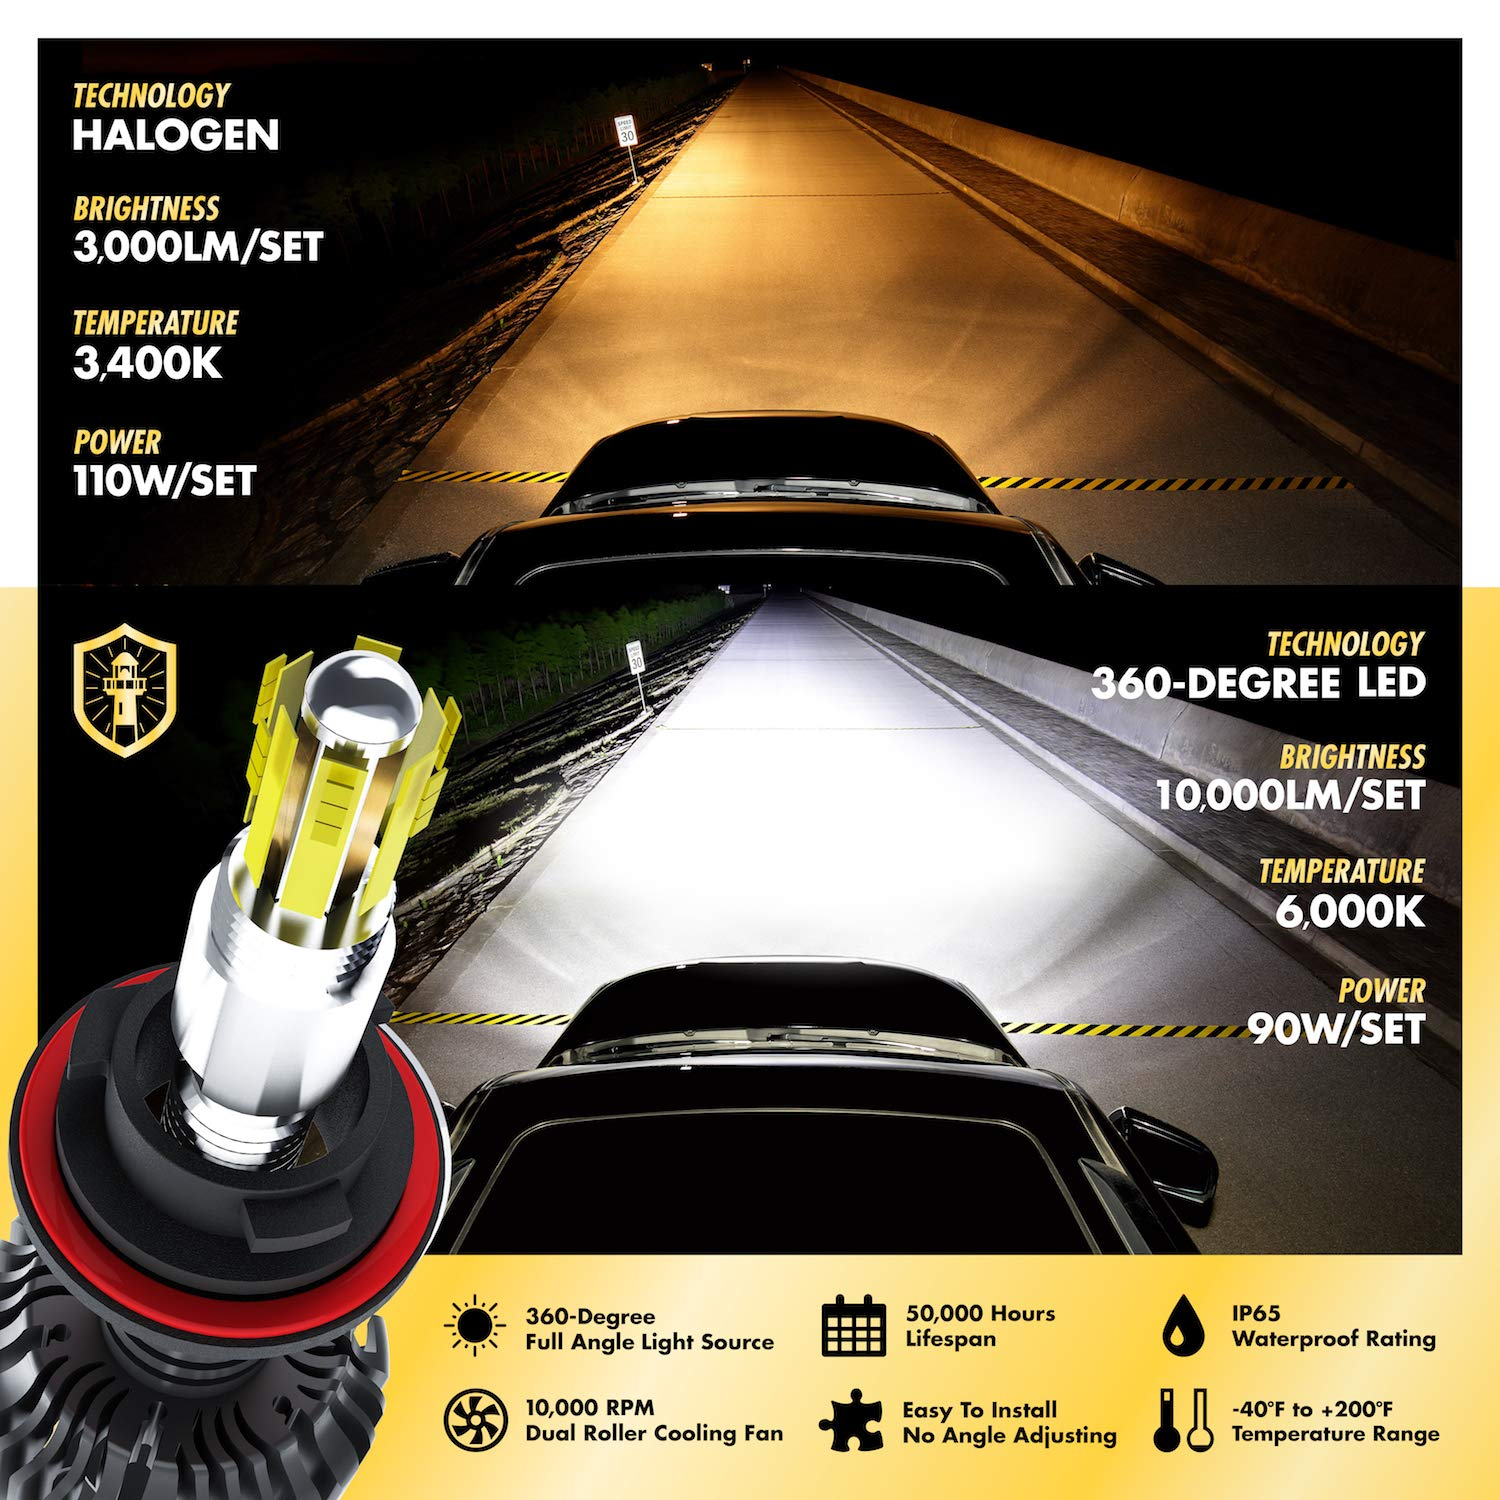 HB4 6,000K Sky White 10,000LM with 50,000 Hour Lifespan Light Moses 360 Degree LED Headlight Bulbs Conversion Kit High Low Beam 9006 2 Yr Warranty